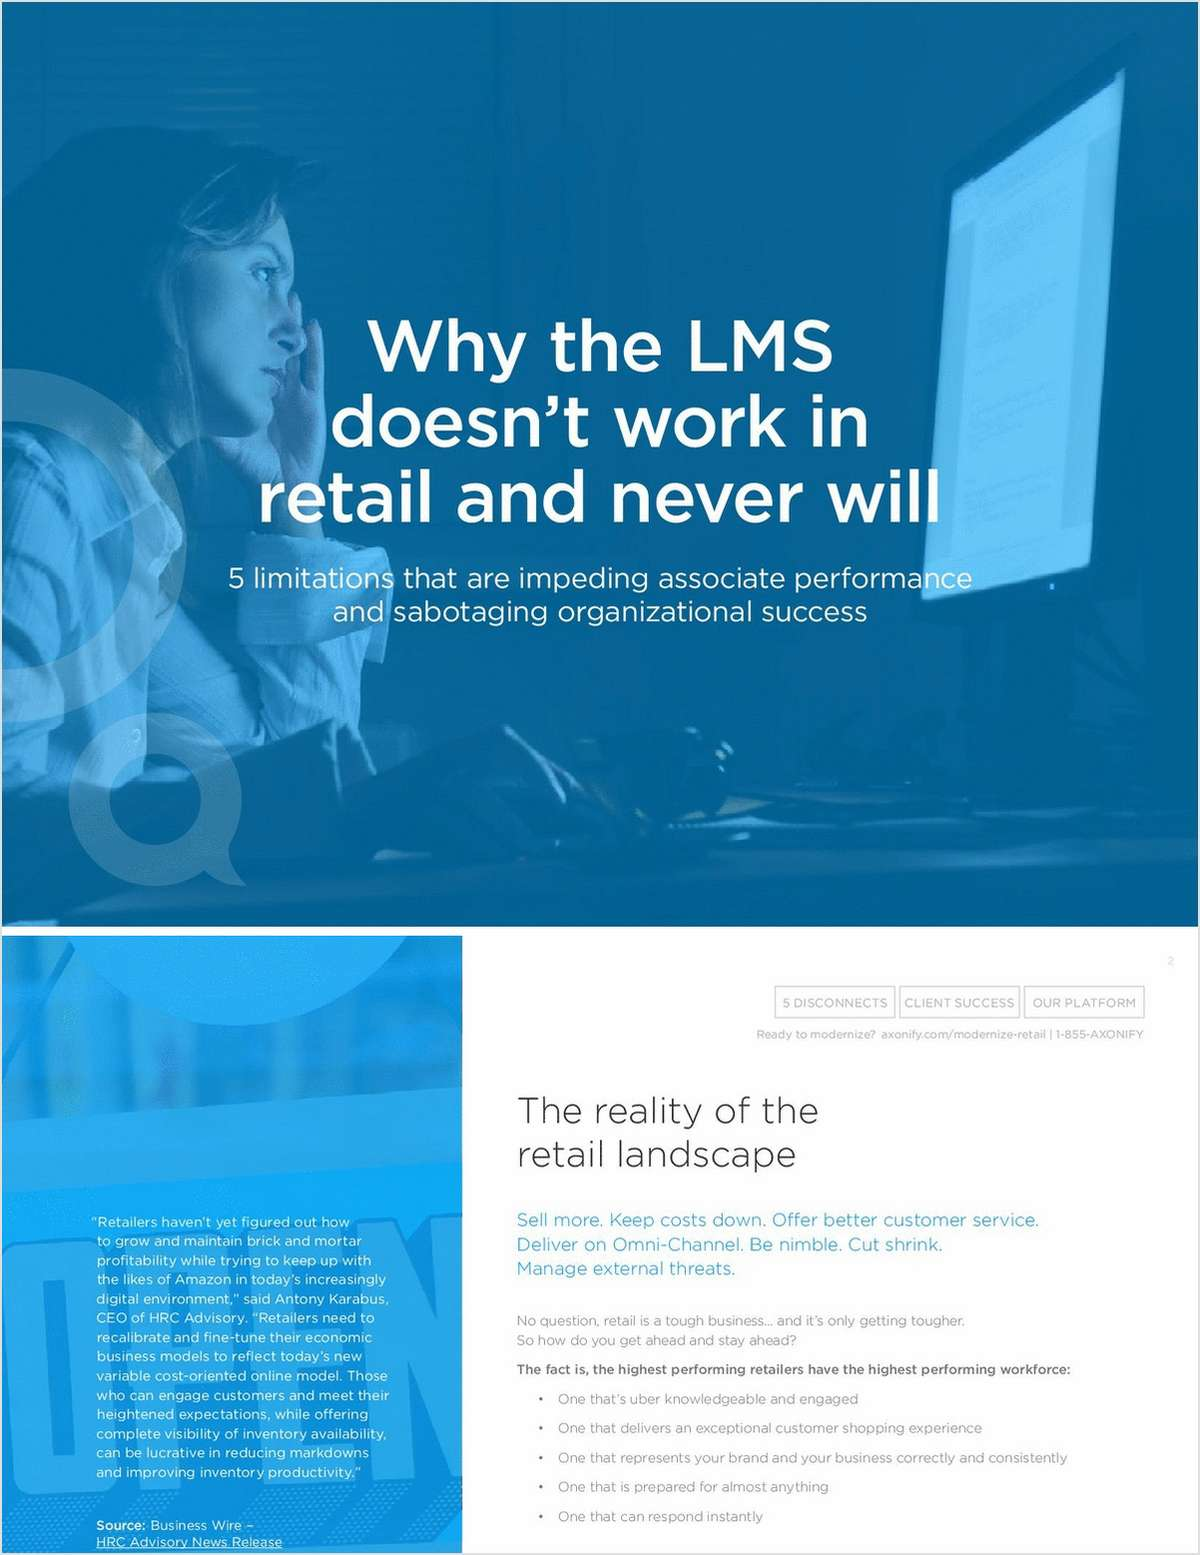 Why the LMS Doesn't Work in Retail and Never Will